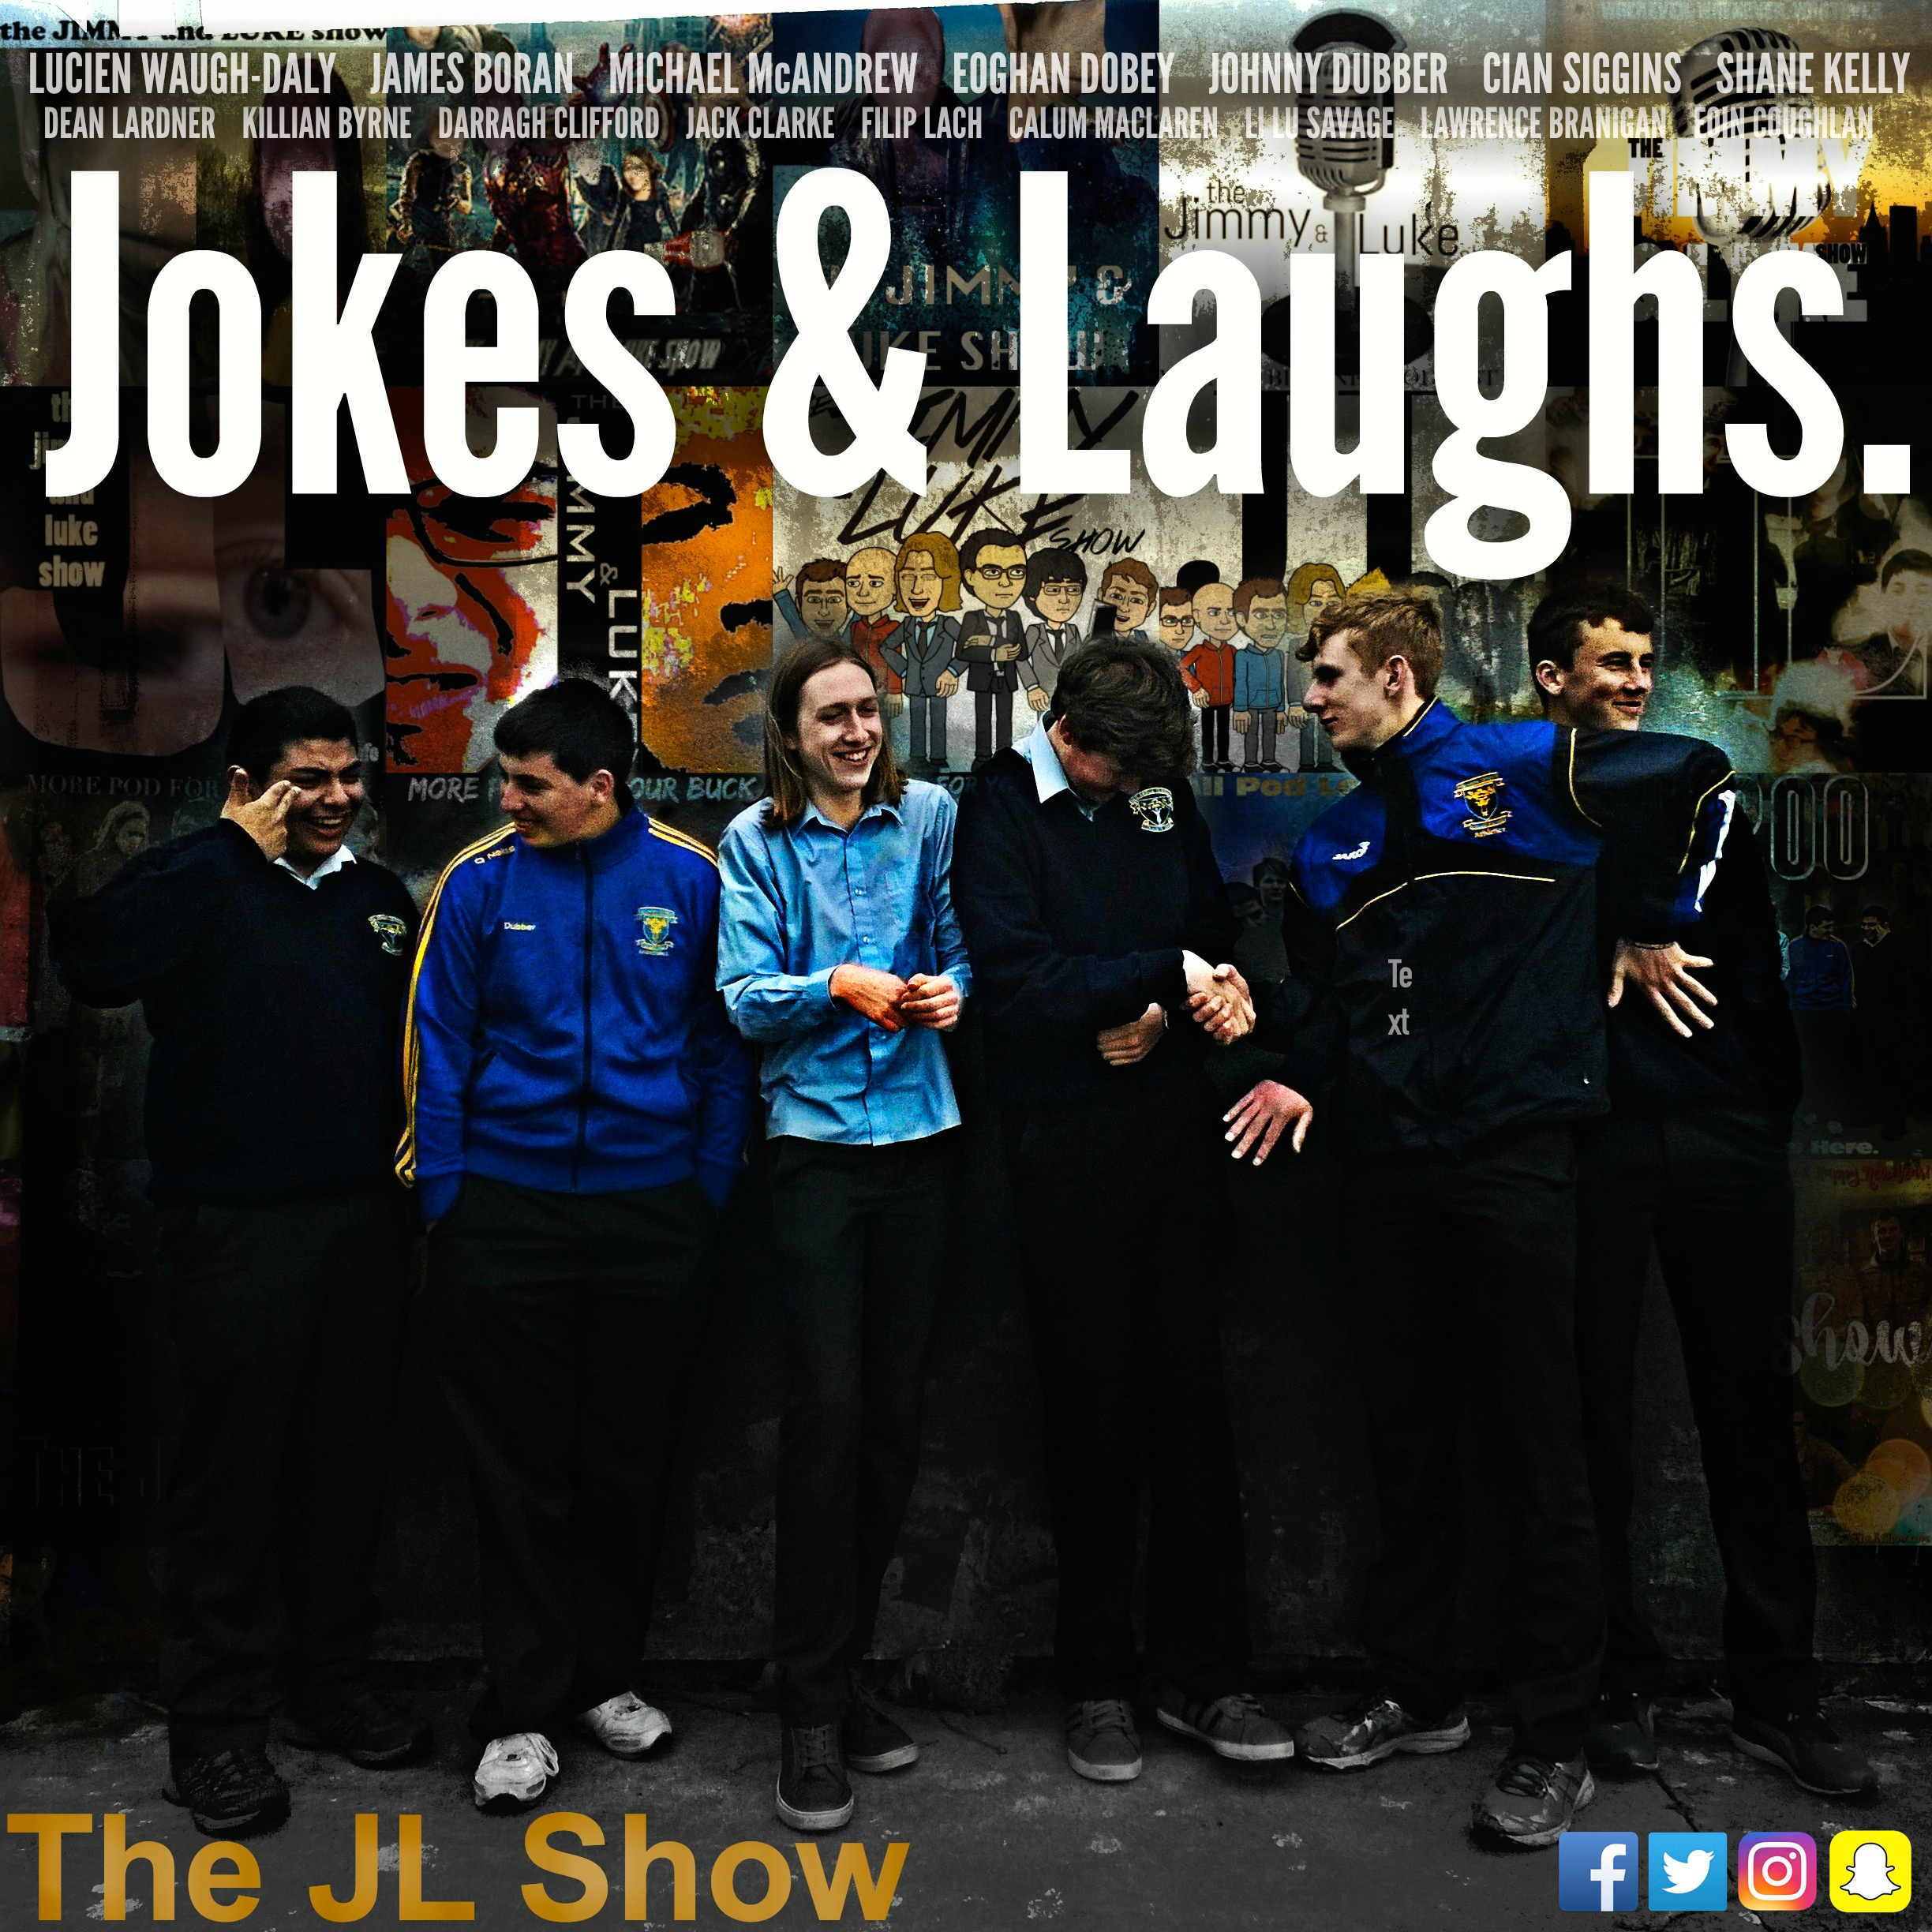 The JL Show